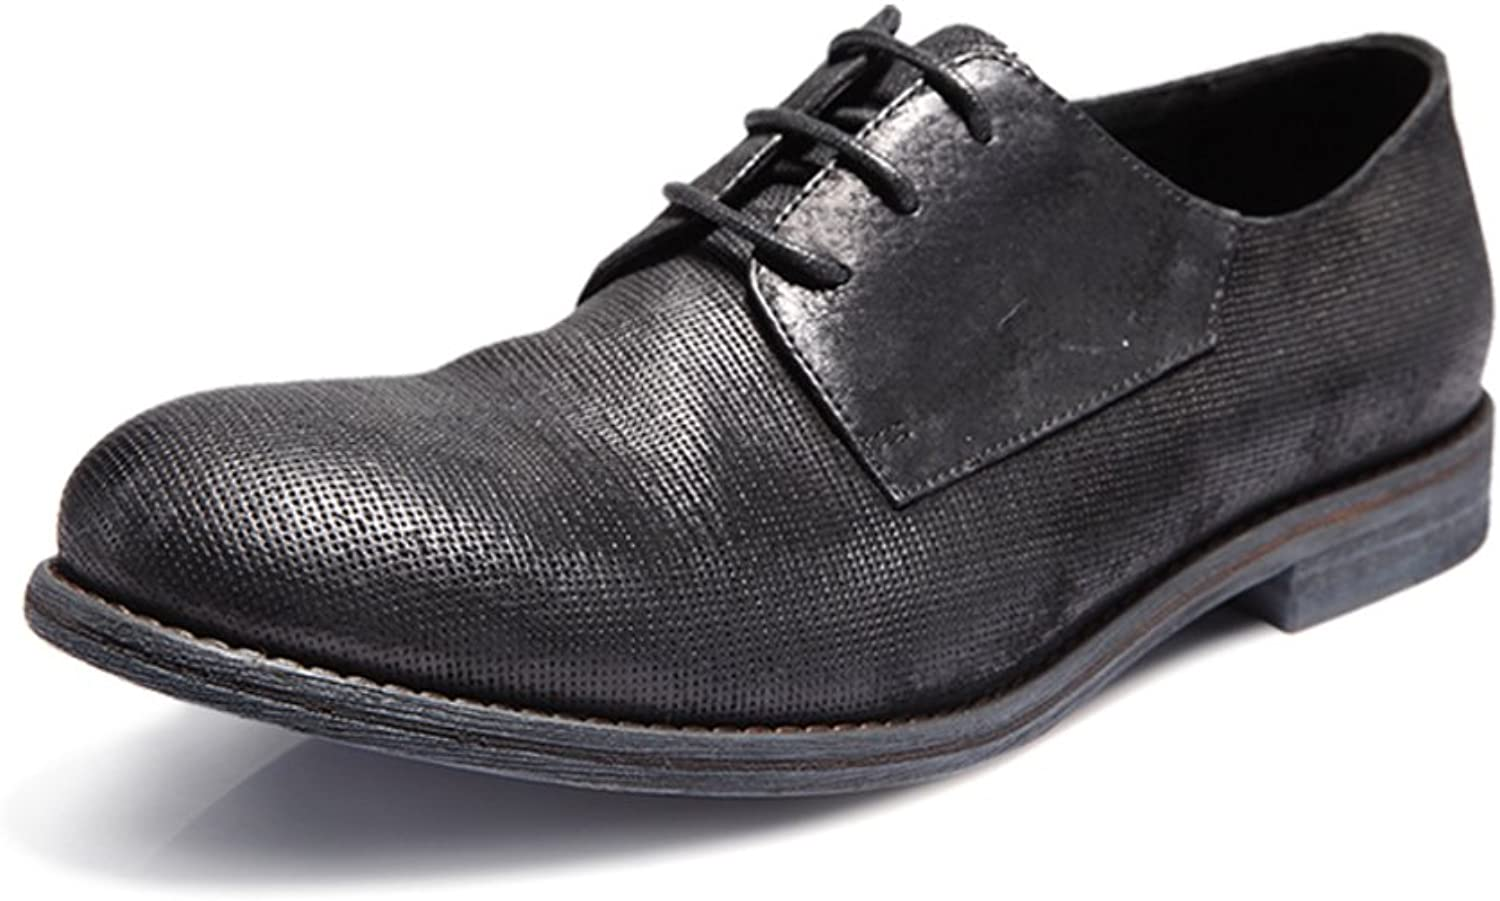 WLJSLLZYQ Trend of Men's shoes in Spring and Summer Retro Old British Business Casual shoes